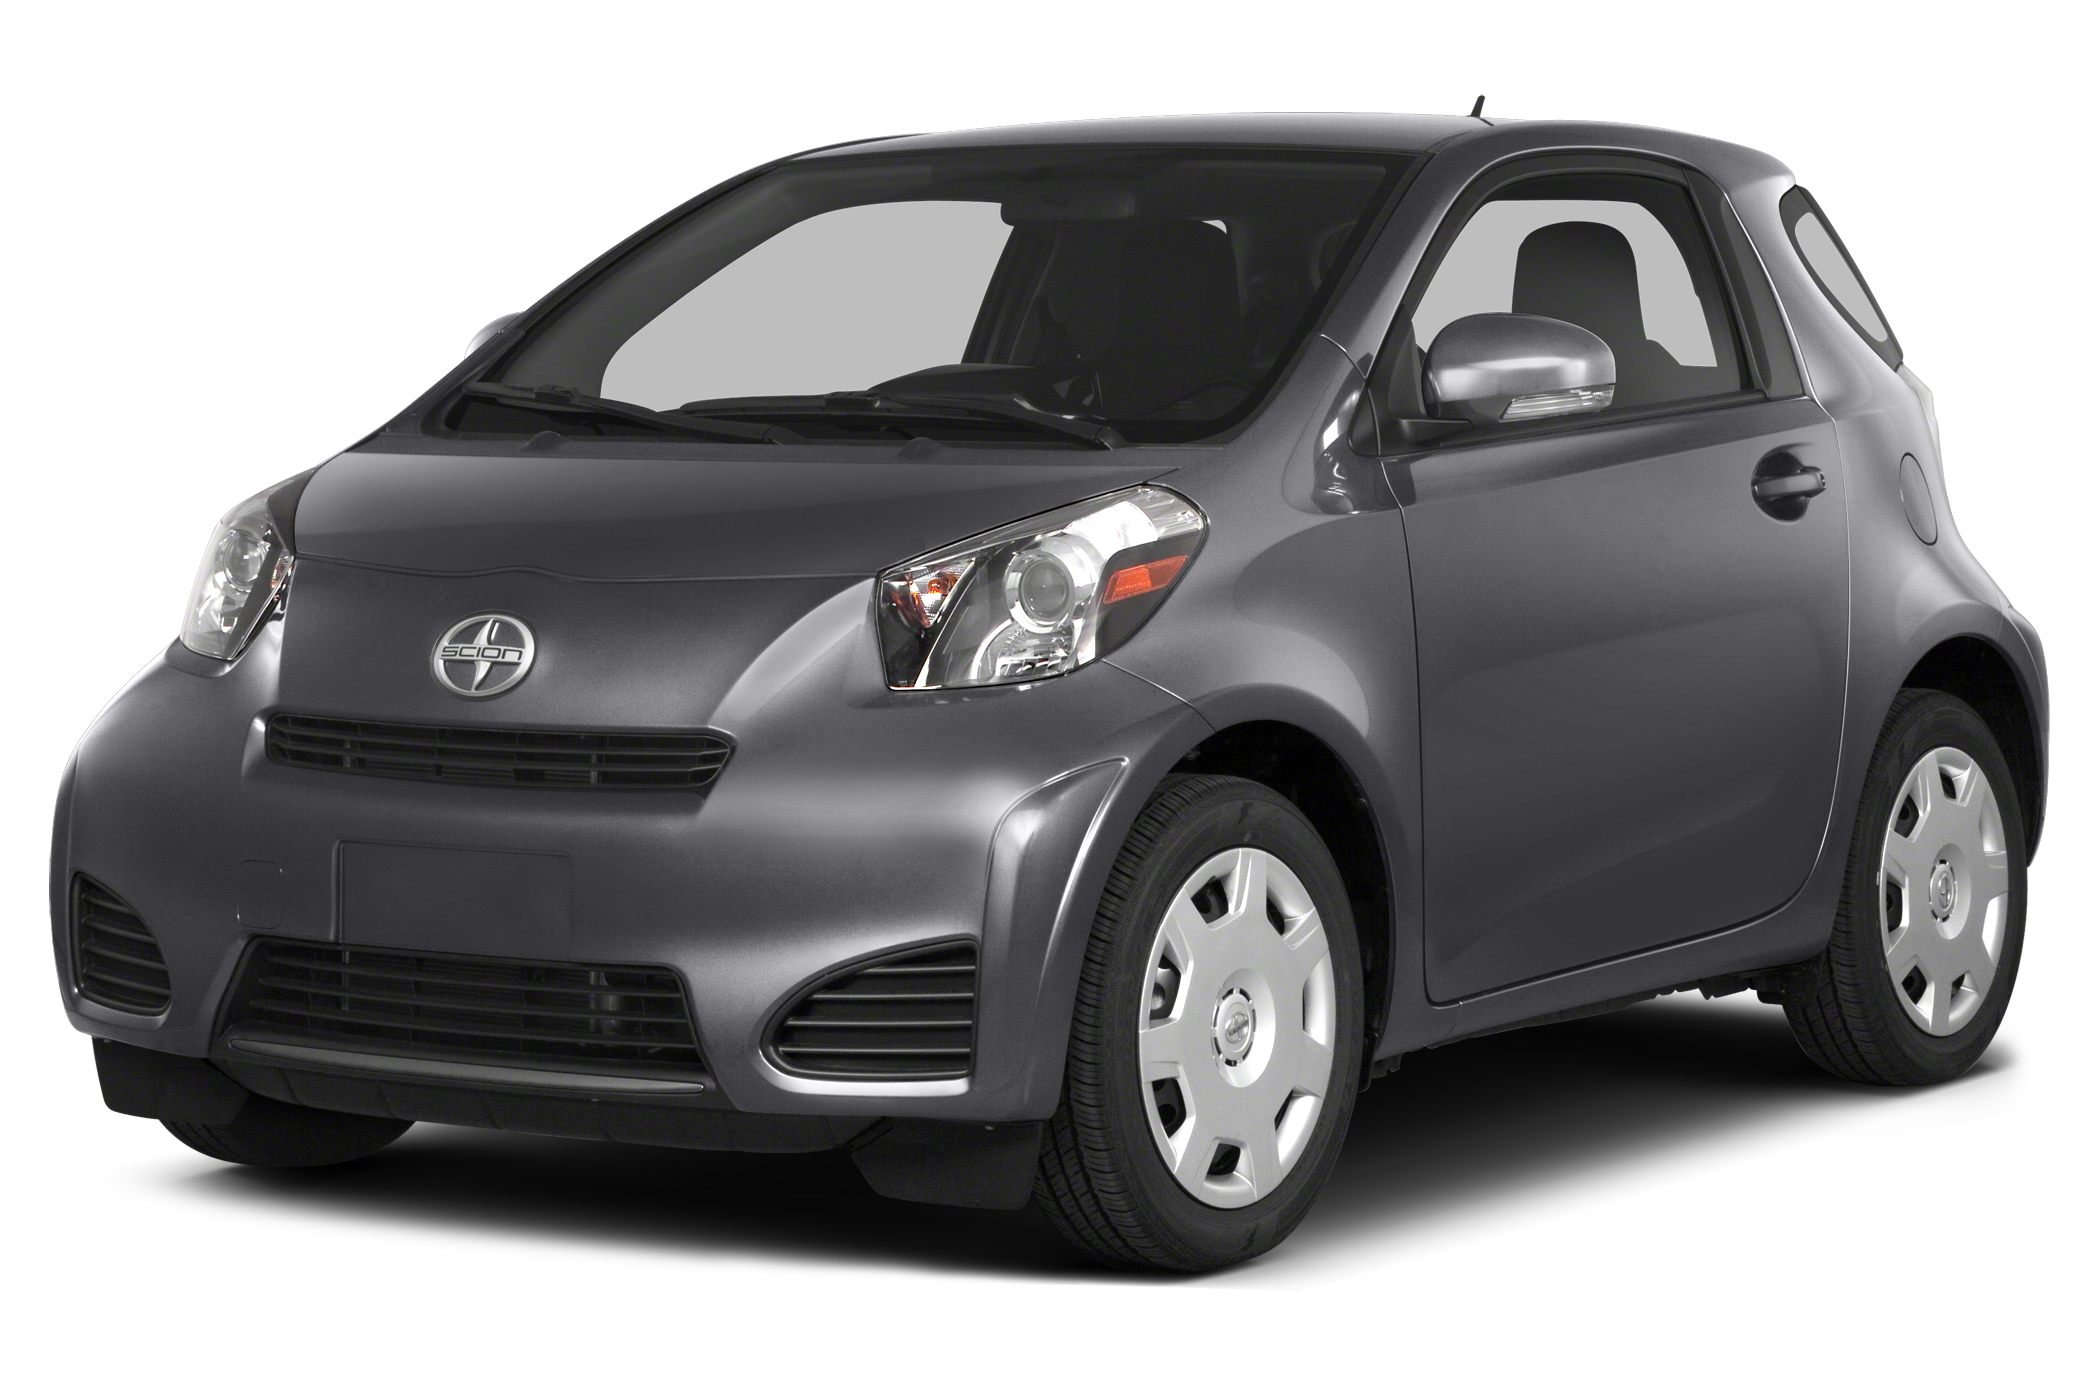 2013 Scion IQ Base Hatchback for sale in Shreveport for $12,950 with 6,382 miles